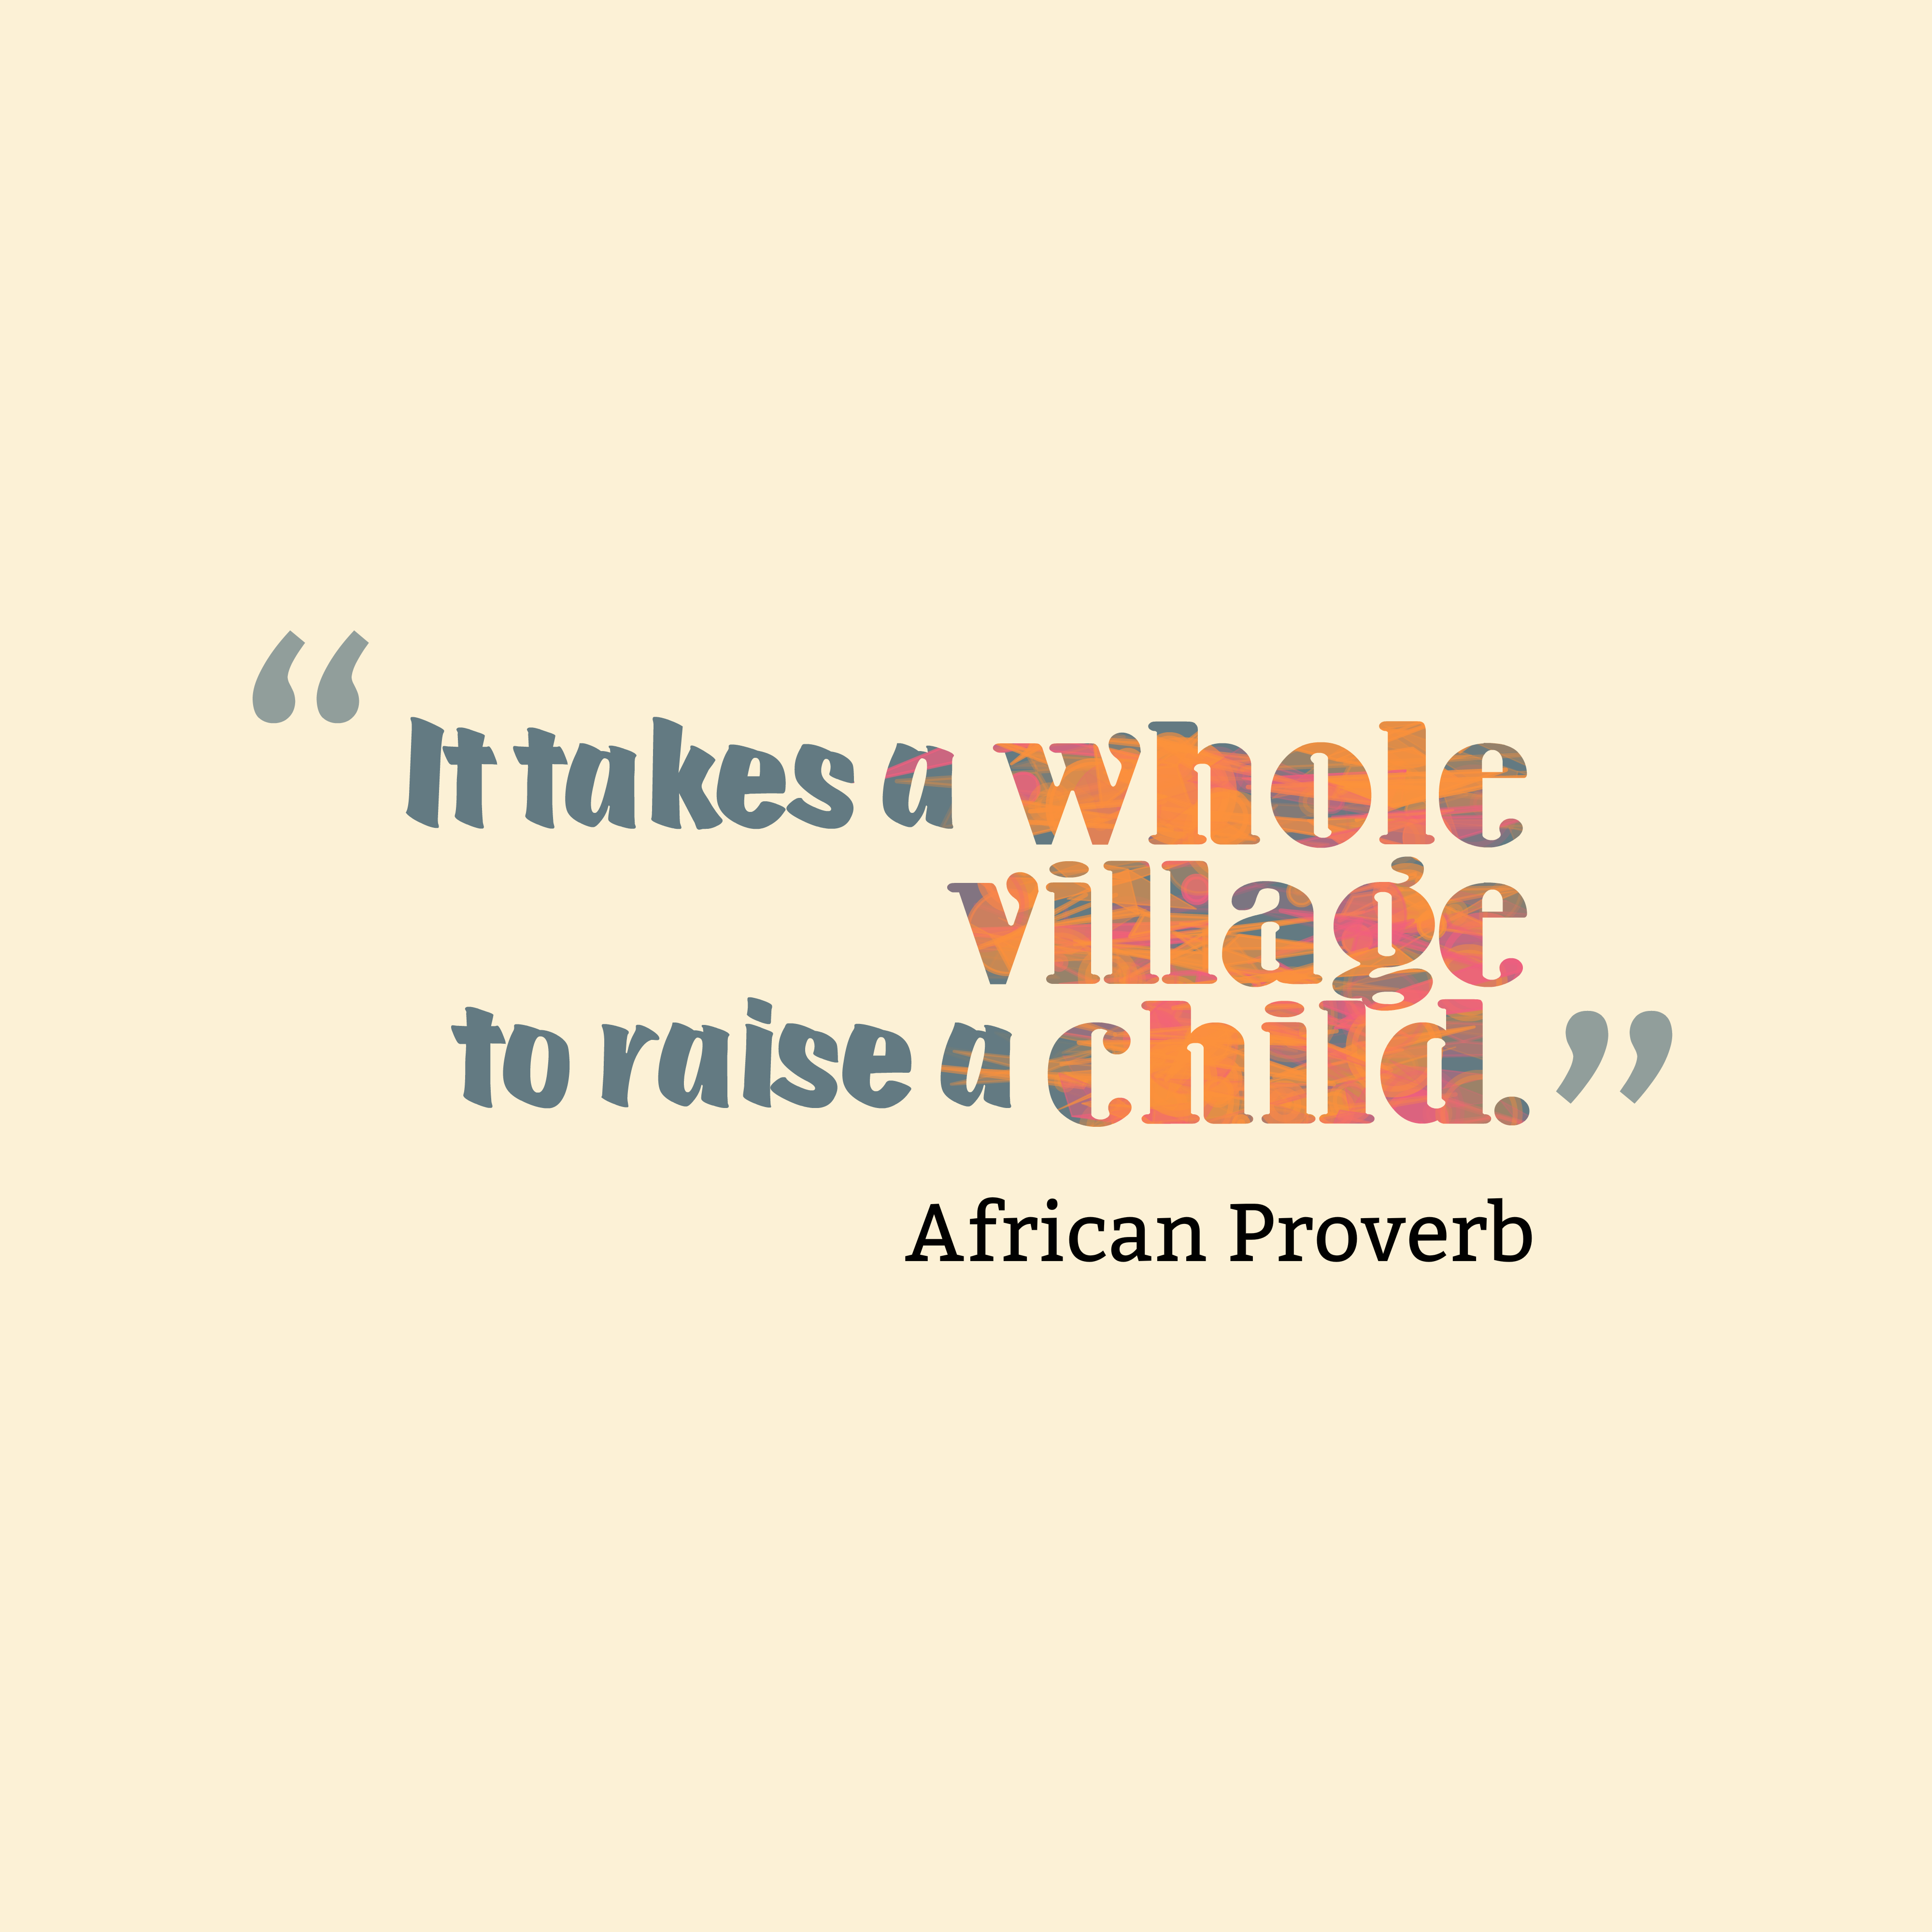 African Proverb About Society